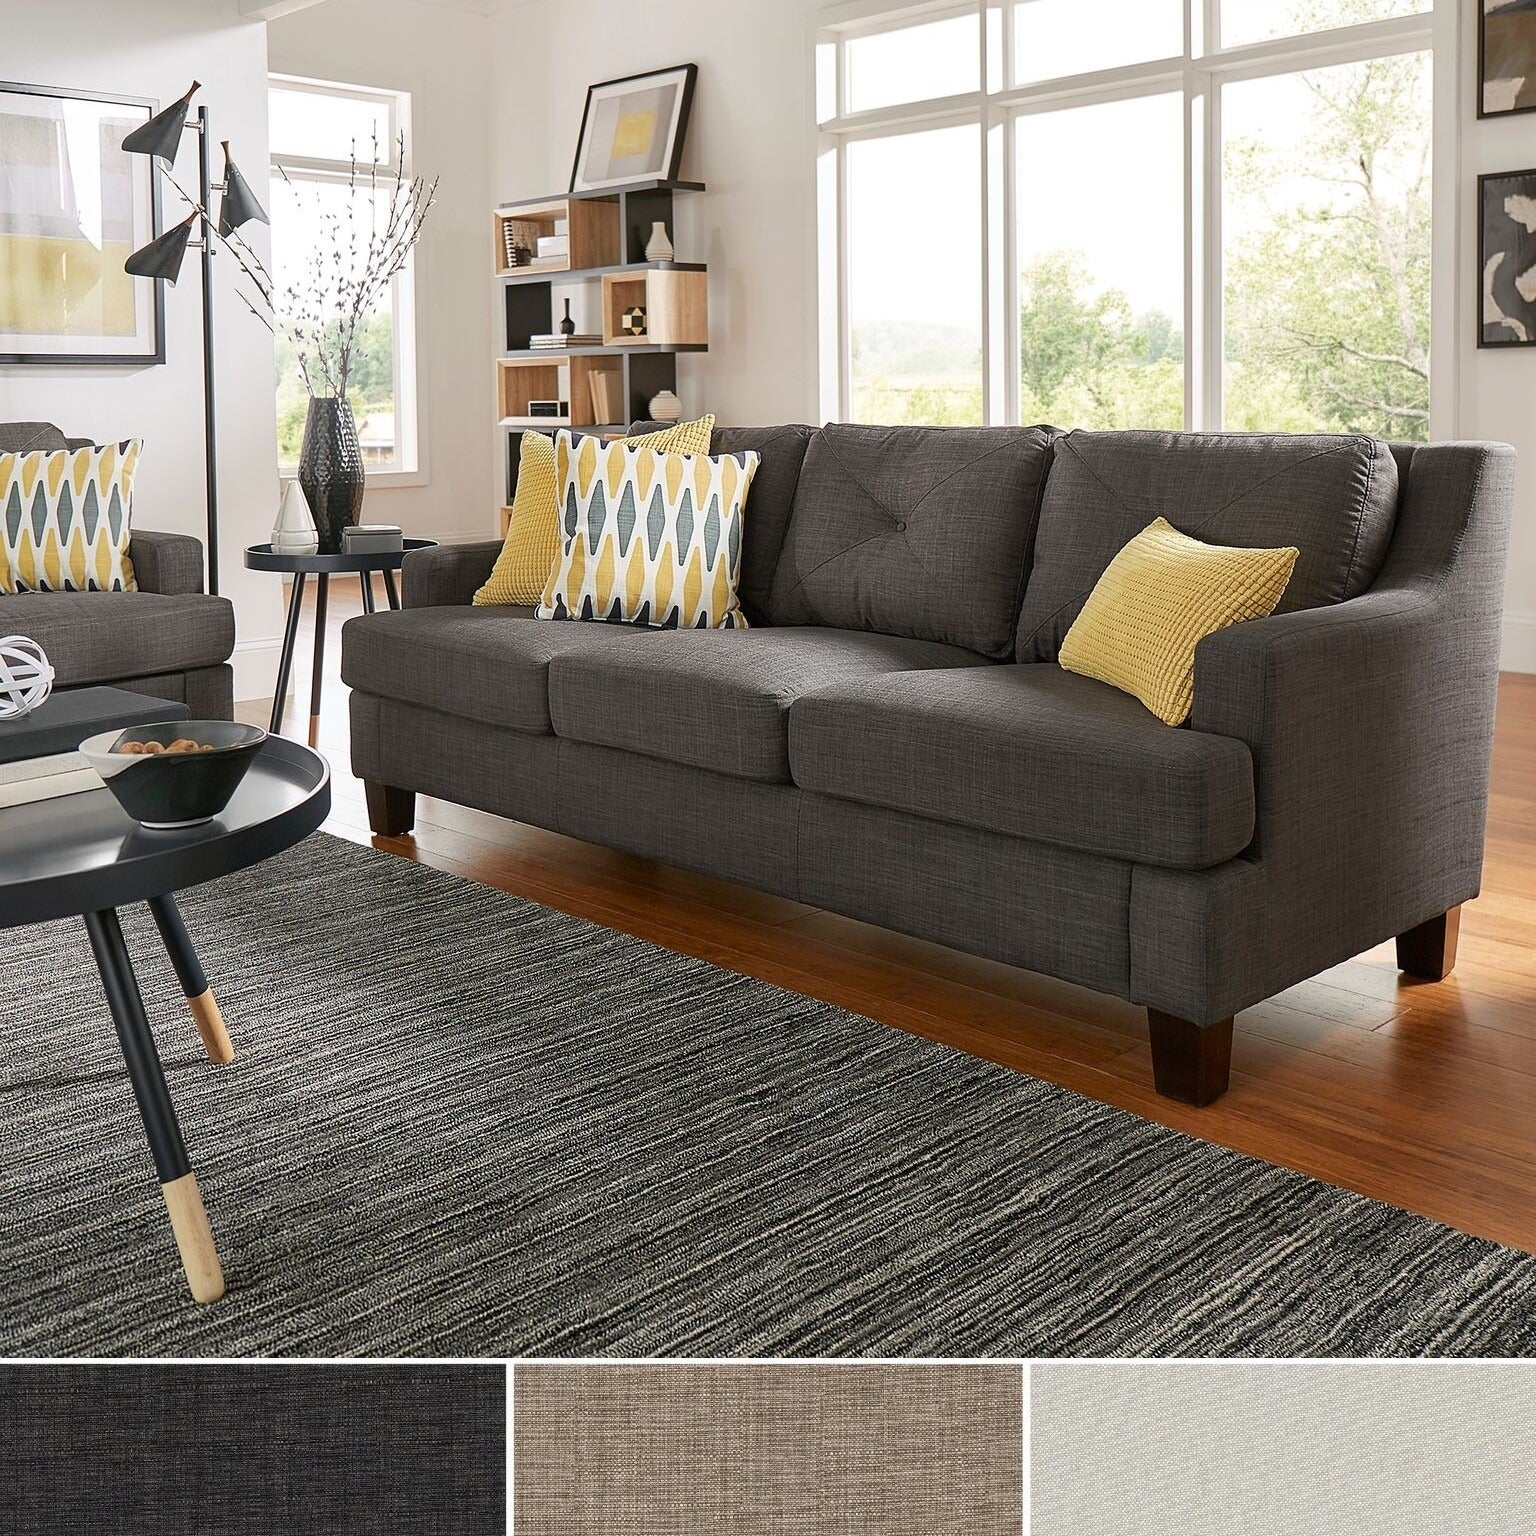 Shop elston linen tufted sloped track sofa inspire q modern free shipping today overstock com 8859663